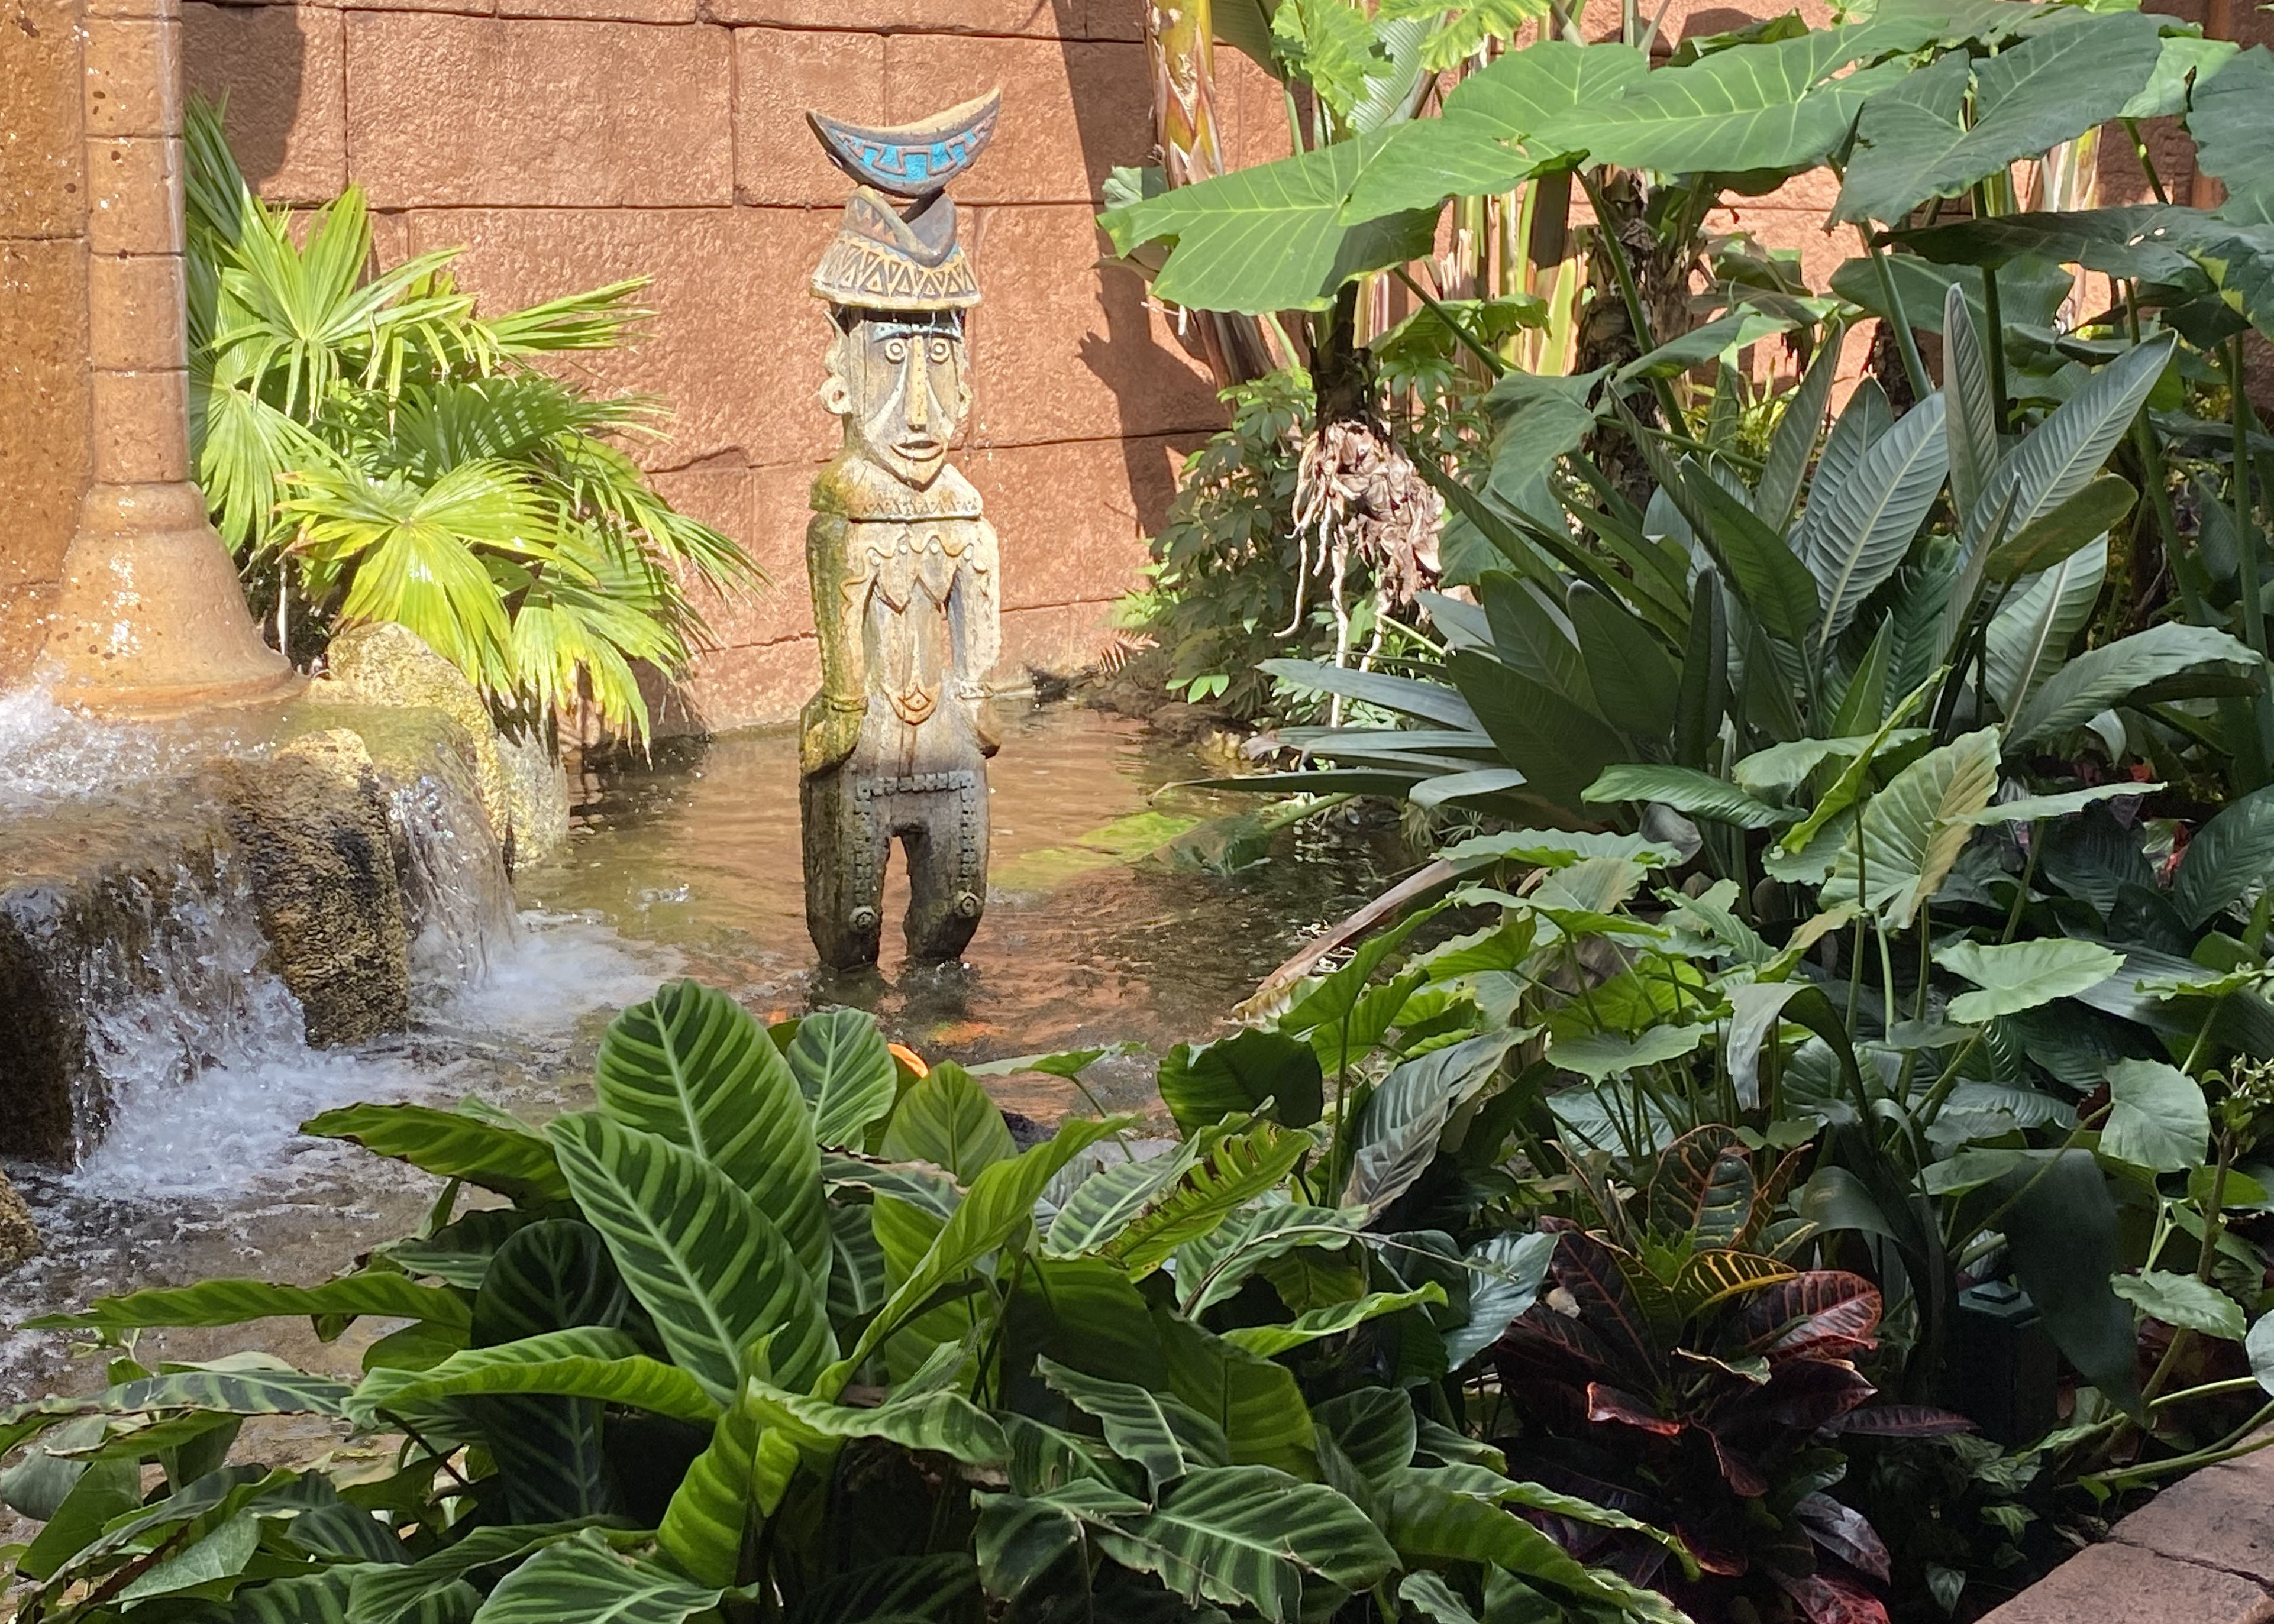 sculpture and water feature.jpg thumbnail